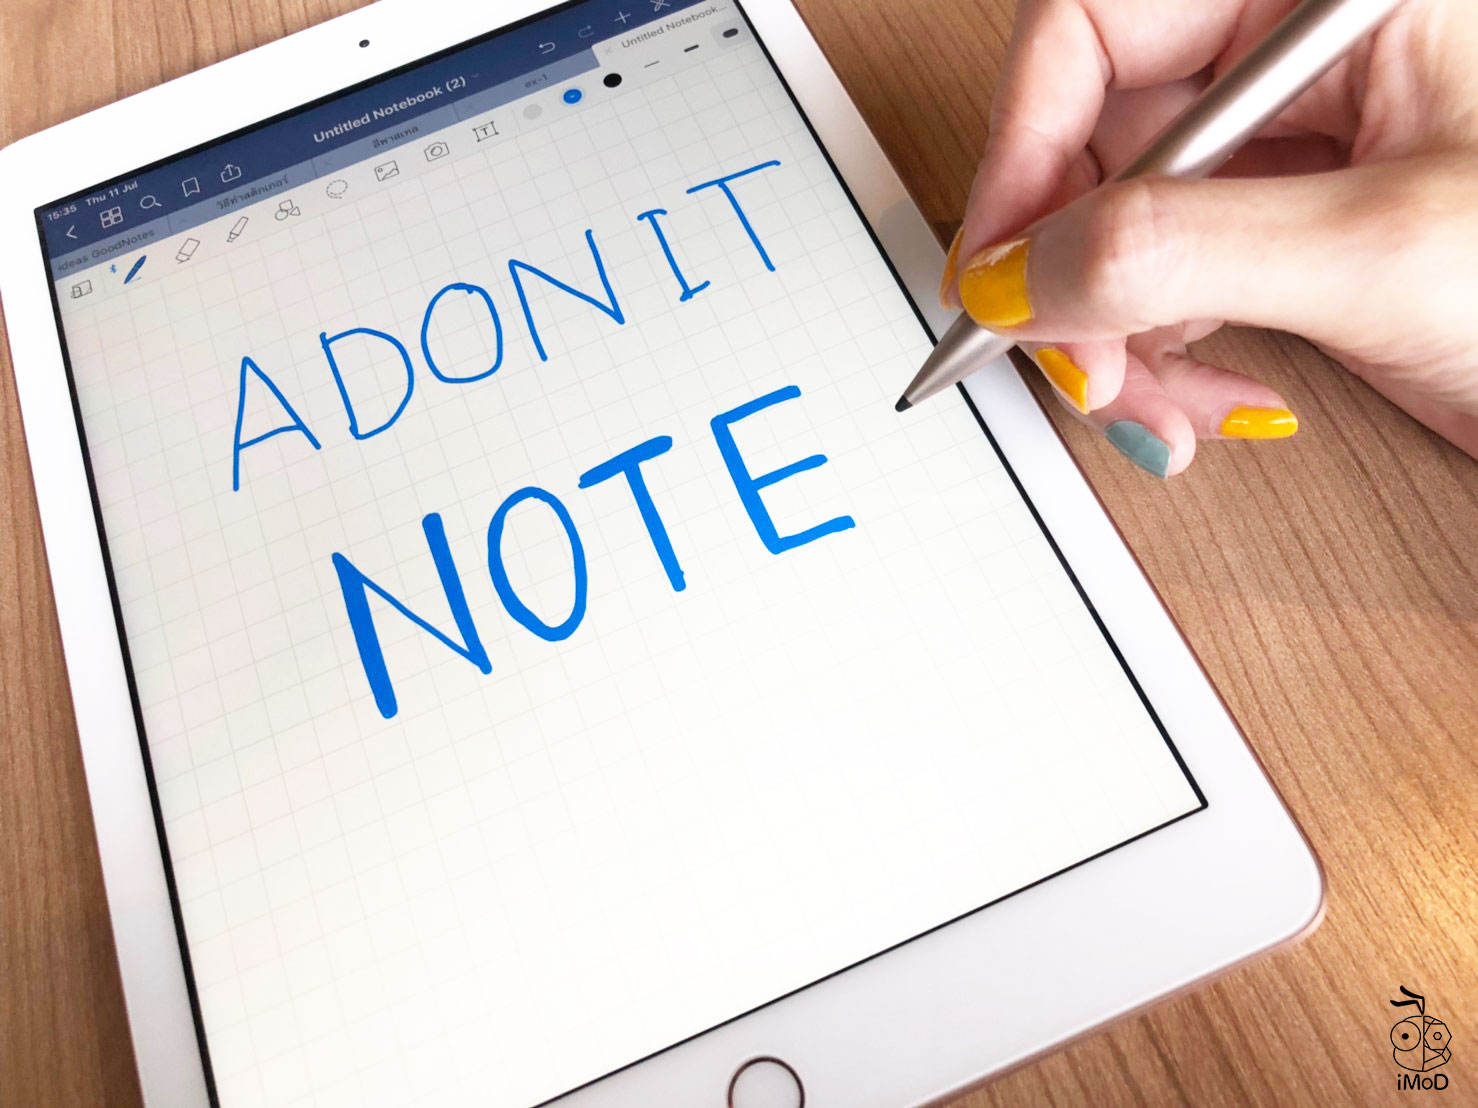 Adonit Note 6